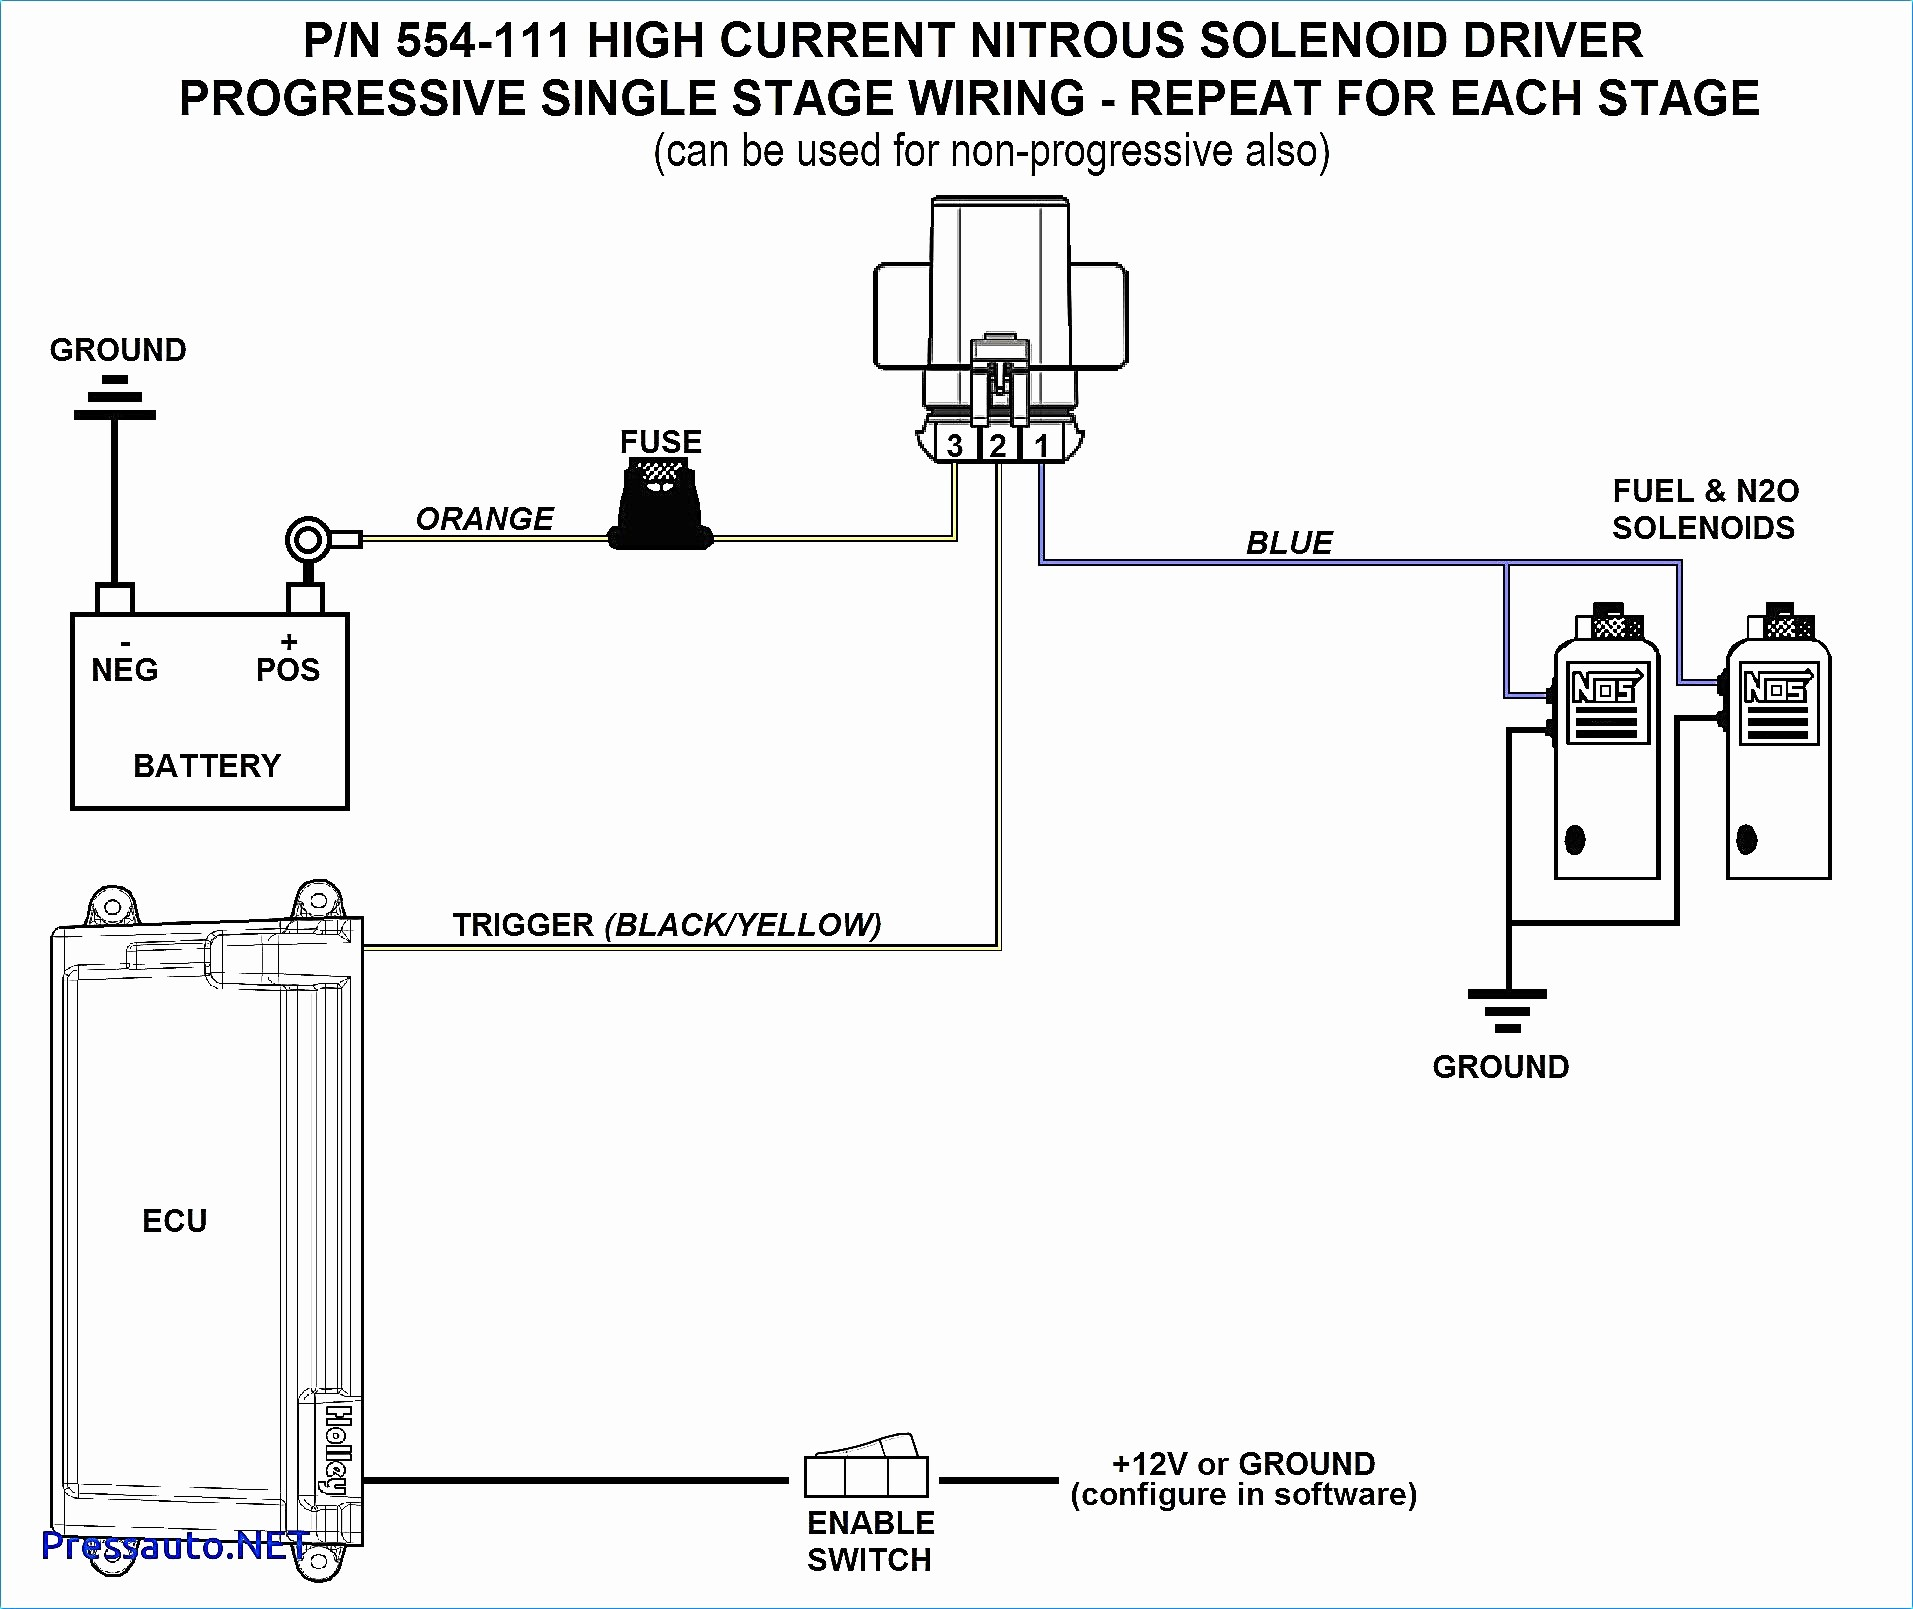 Electric Fuel Pump Relay Wiring Diagram Leryn Franco In Addition 2000 Toyota Tundra Electrical Schematics Sample Of